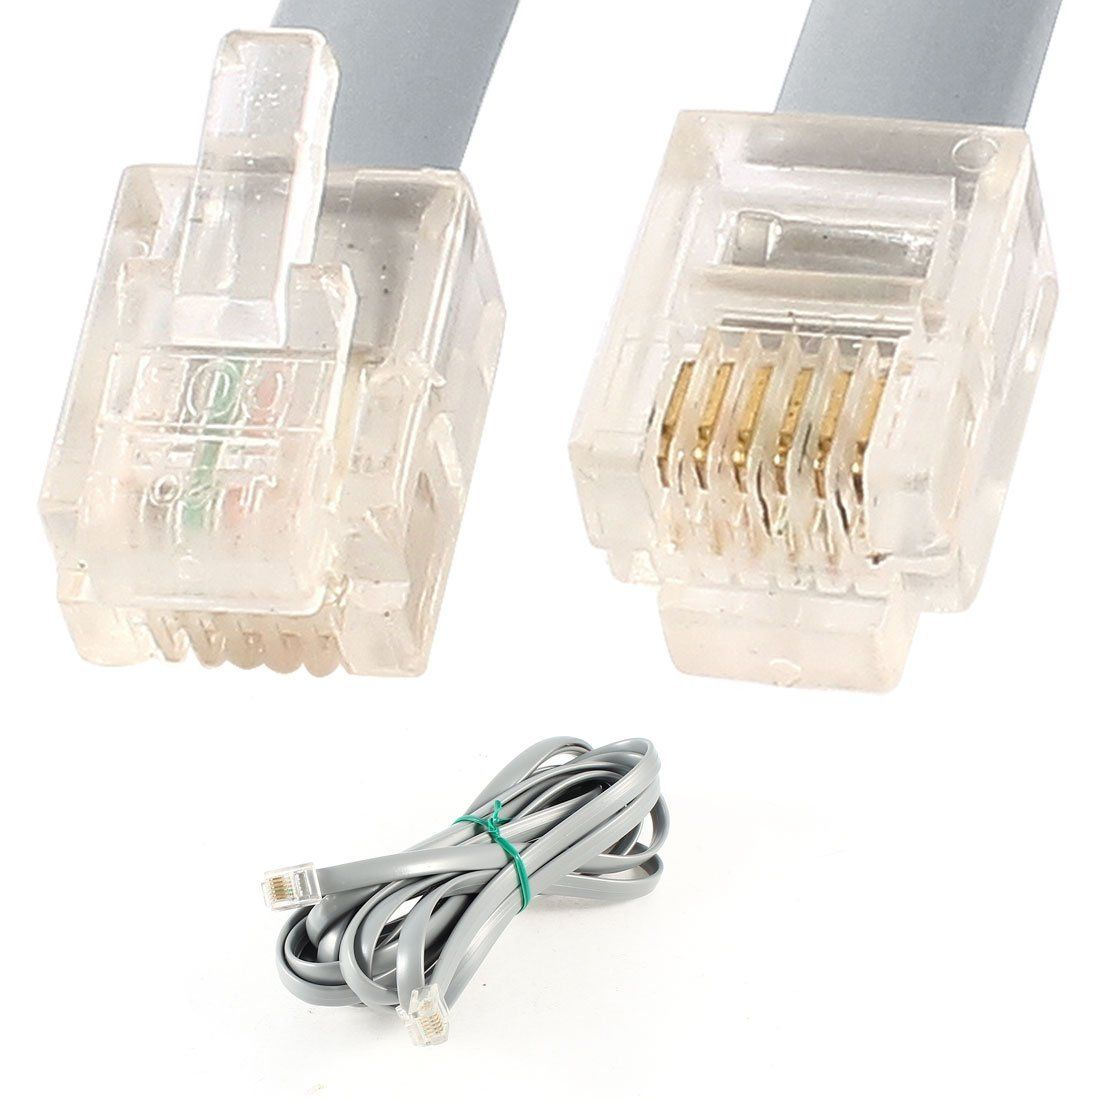 Telephone Wiring Colors Also 6 Pin Rj12 Cable Wiring On Telephone